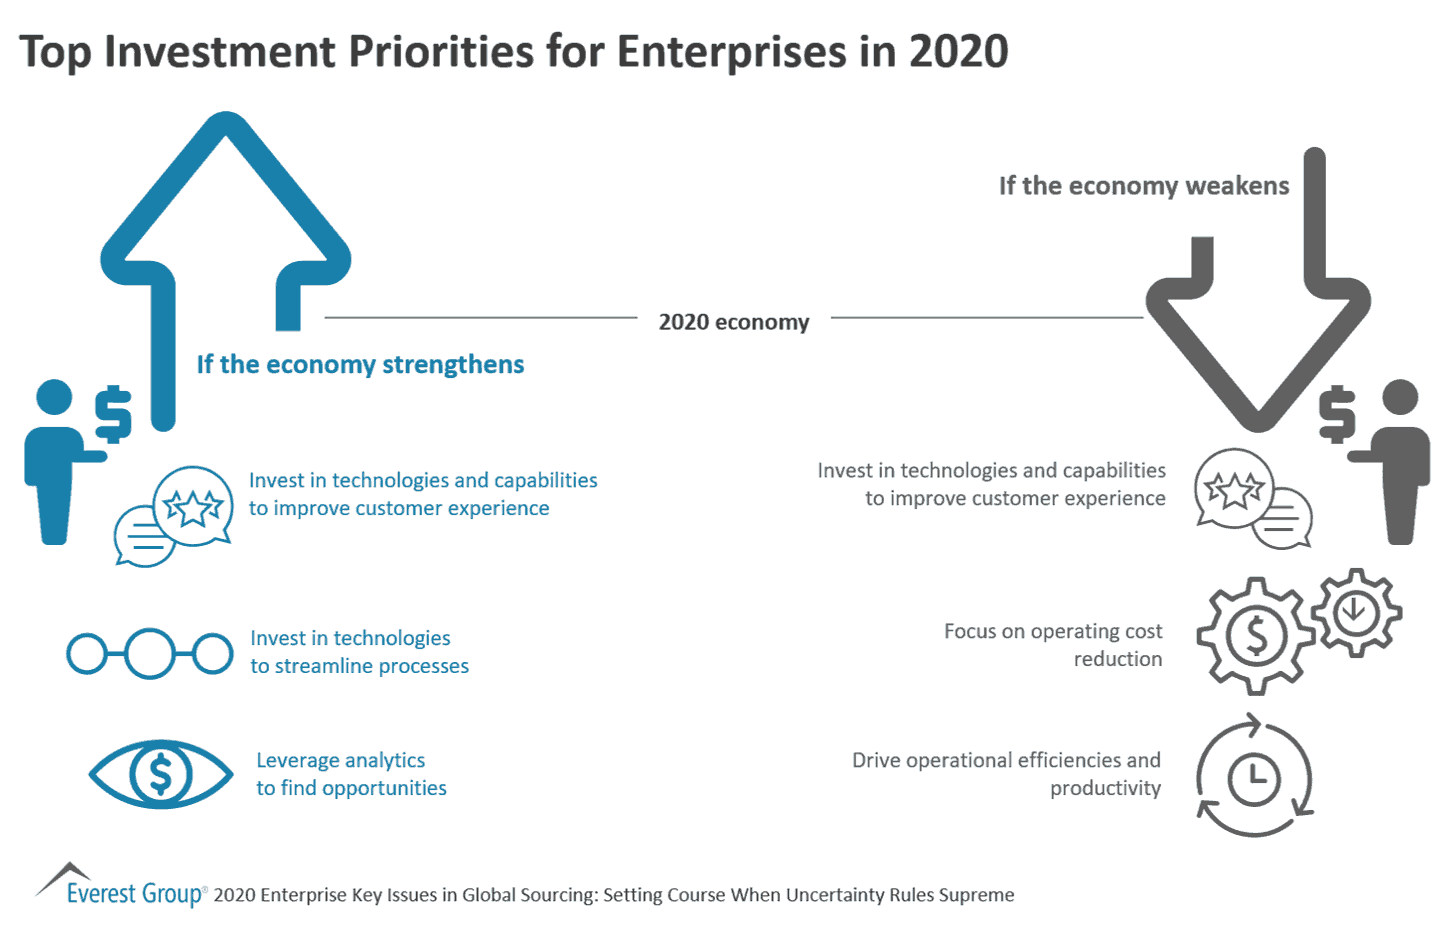 Top Investment Priorities for Enterprises in 2020